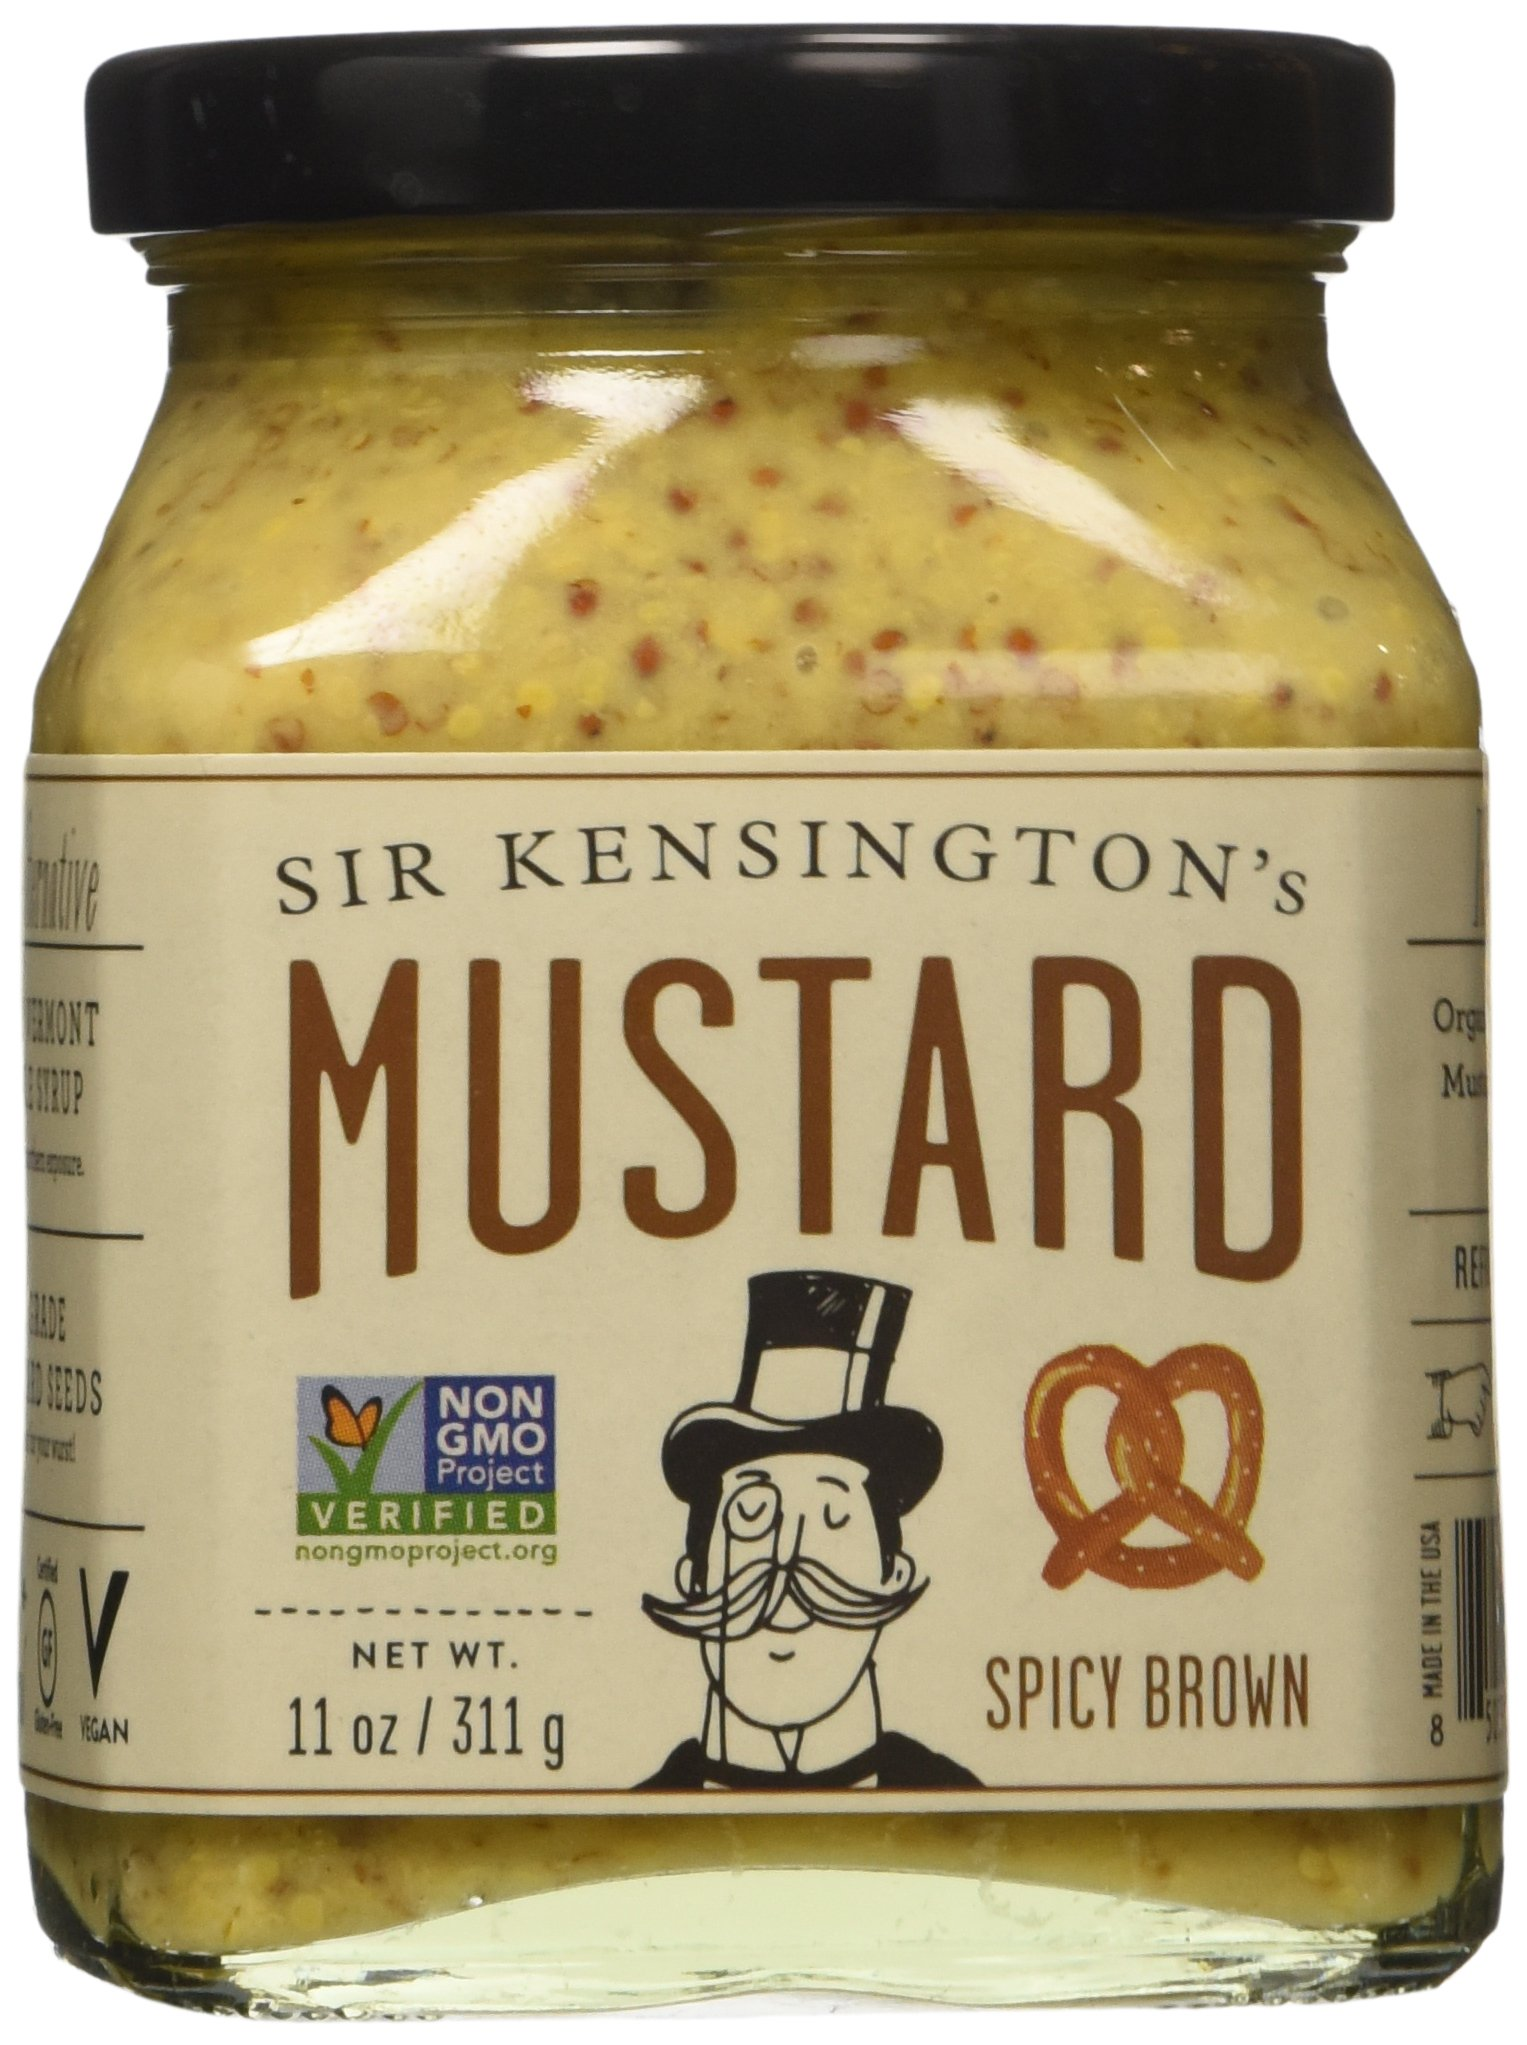 Sir Kensington's Mustard - Spicy Brown - 11 OZ